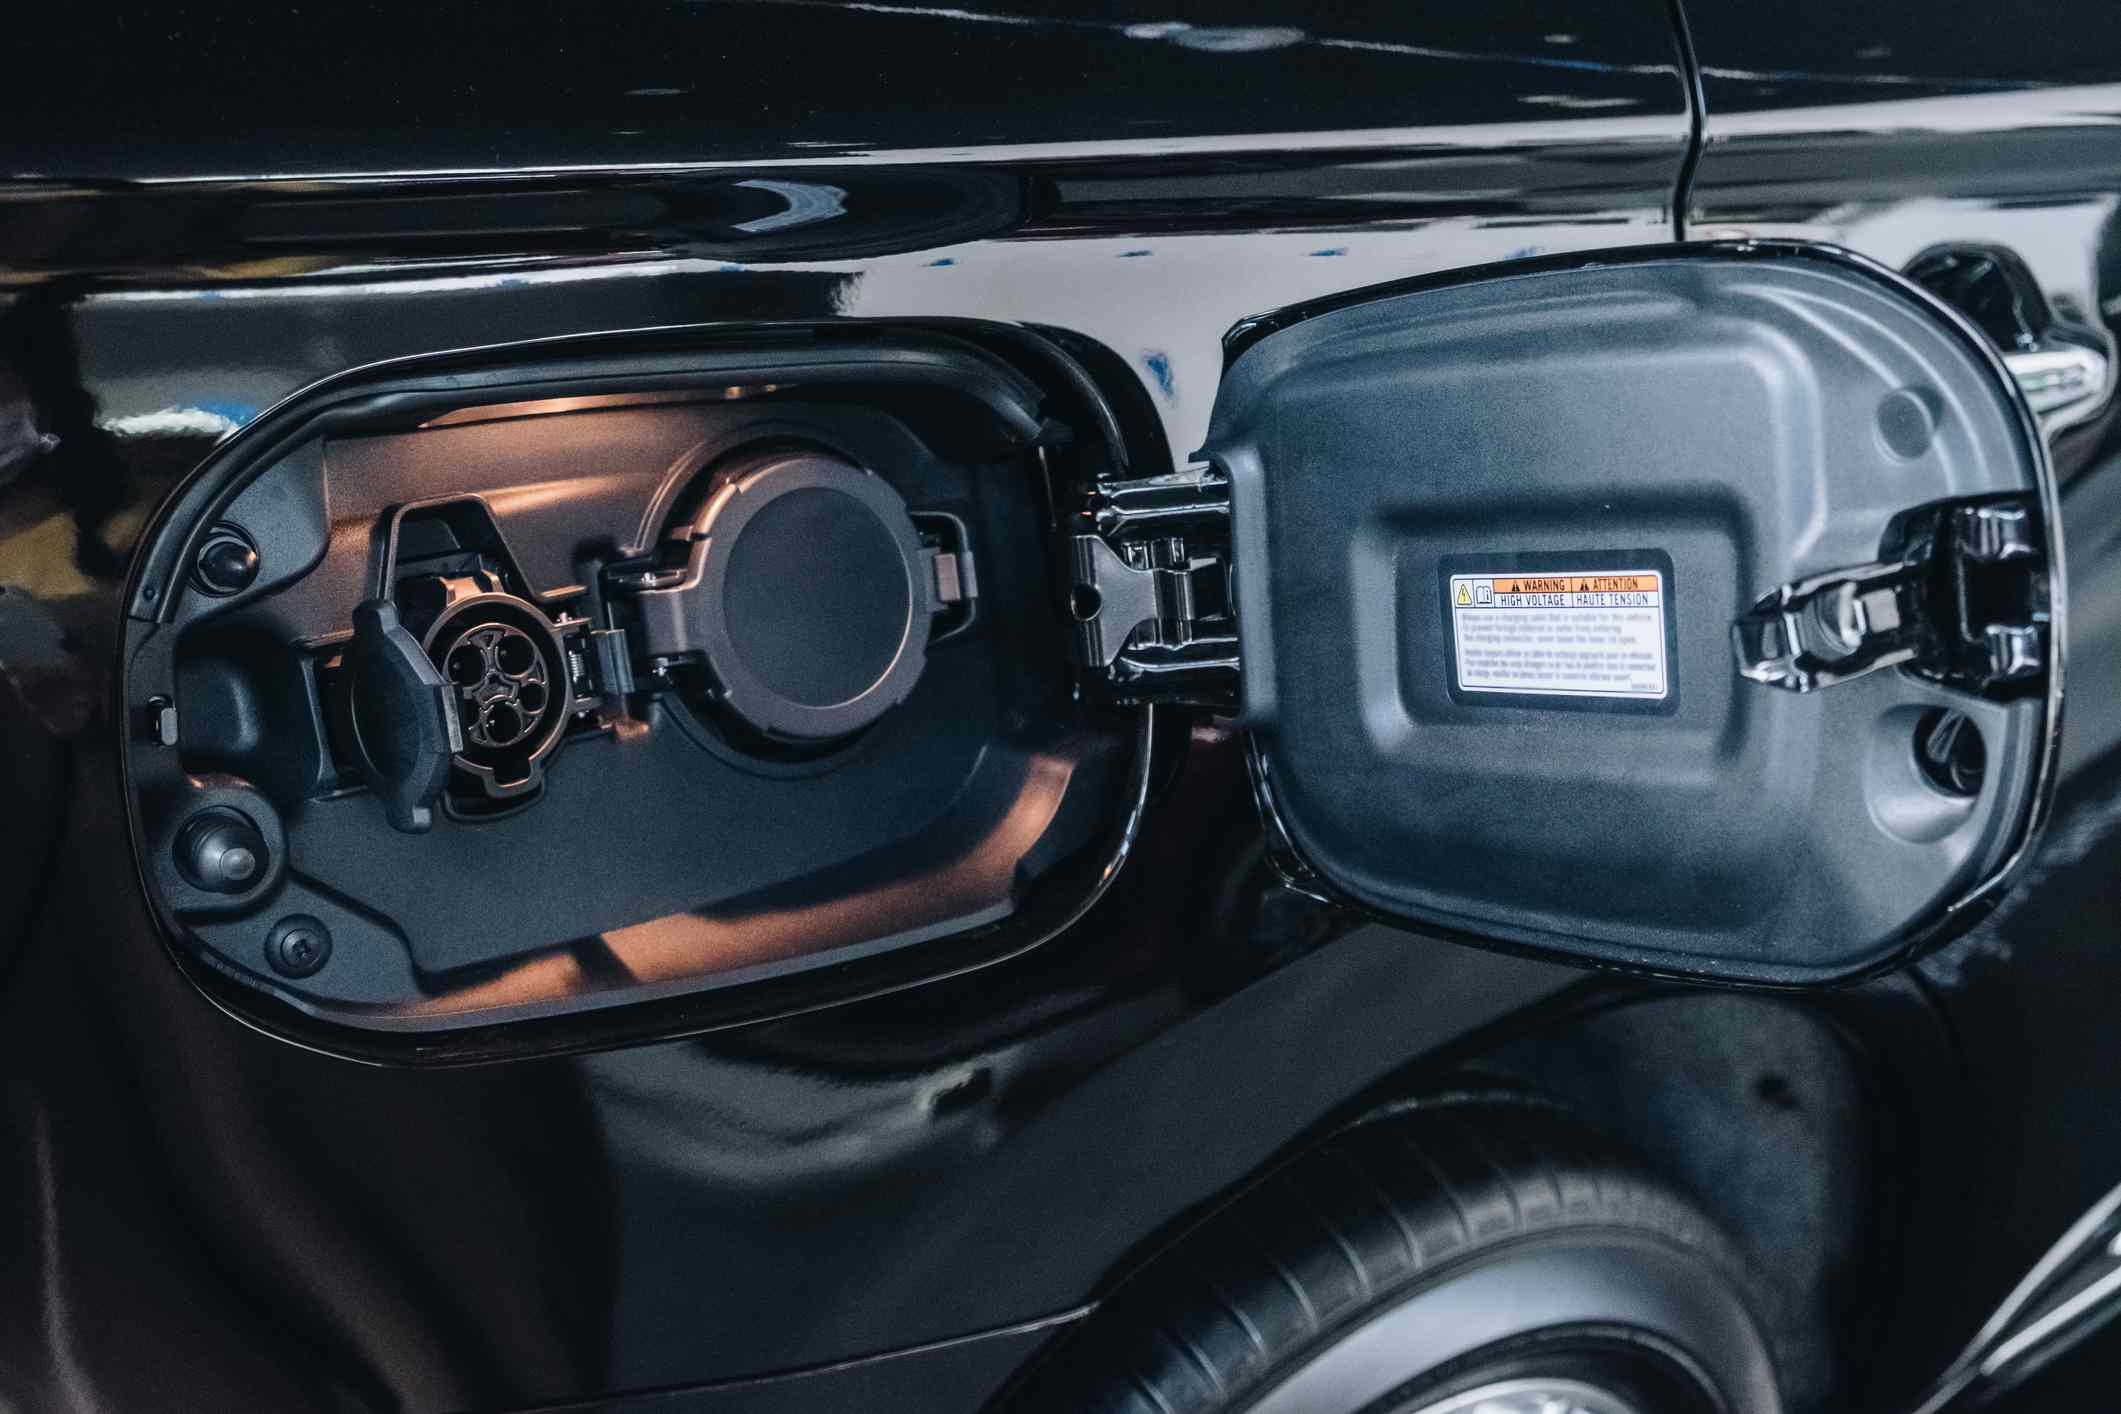 Close up of plug-in hybrid port of an Hybrid Electric Vehicle (PHEV).